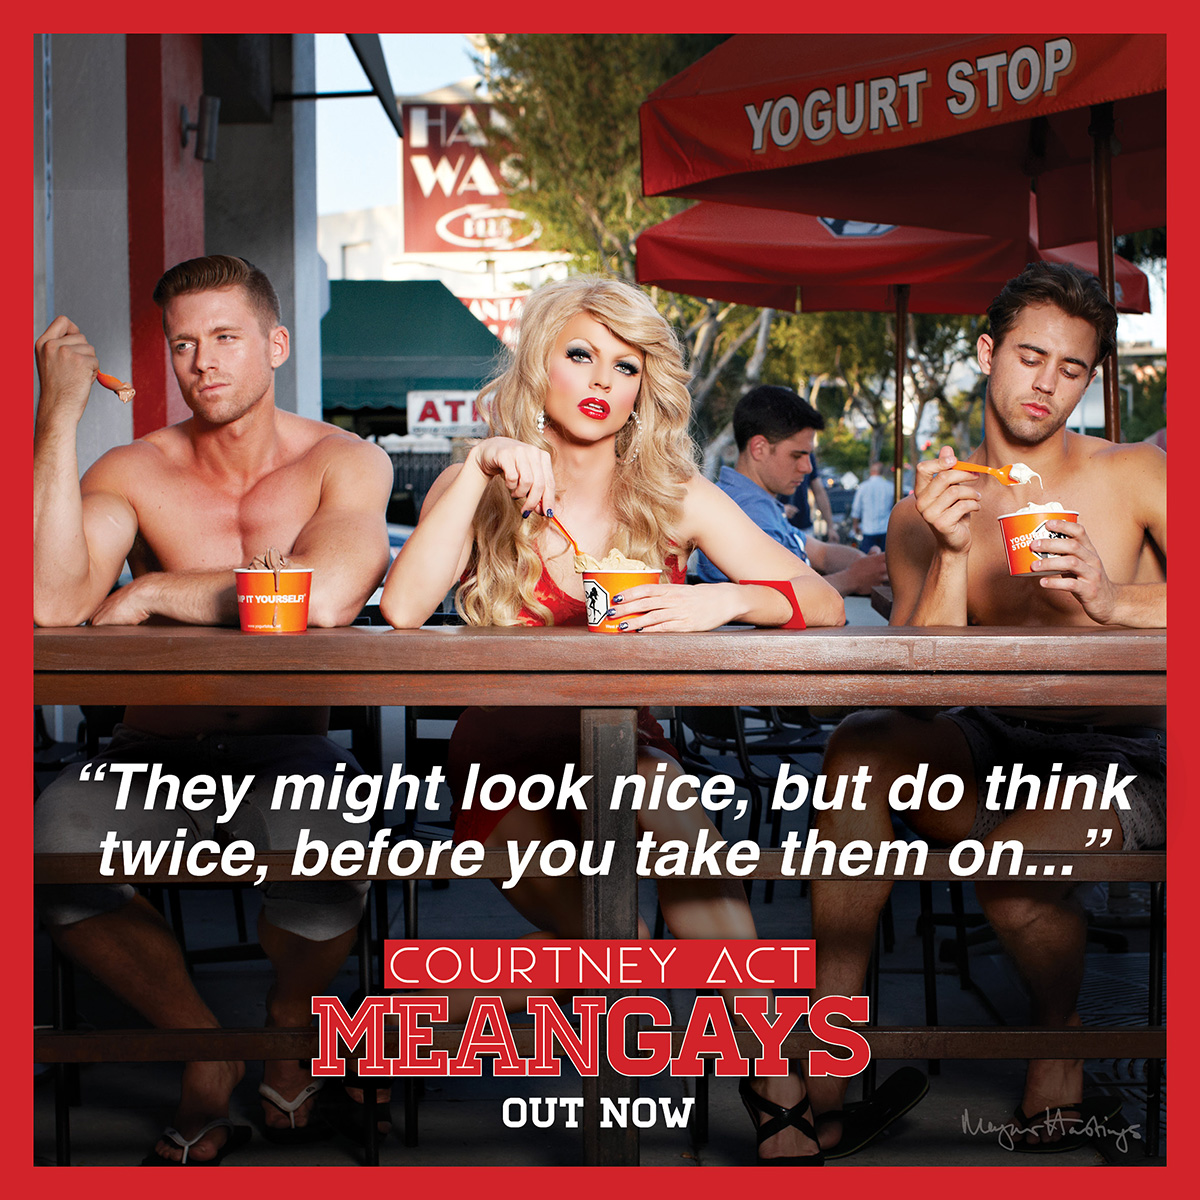 Meangays-Lyric-1